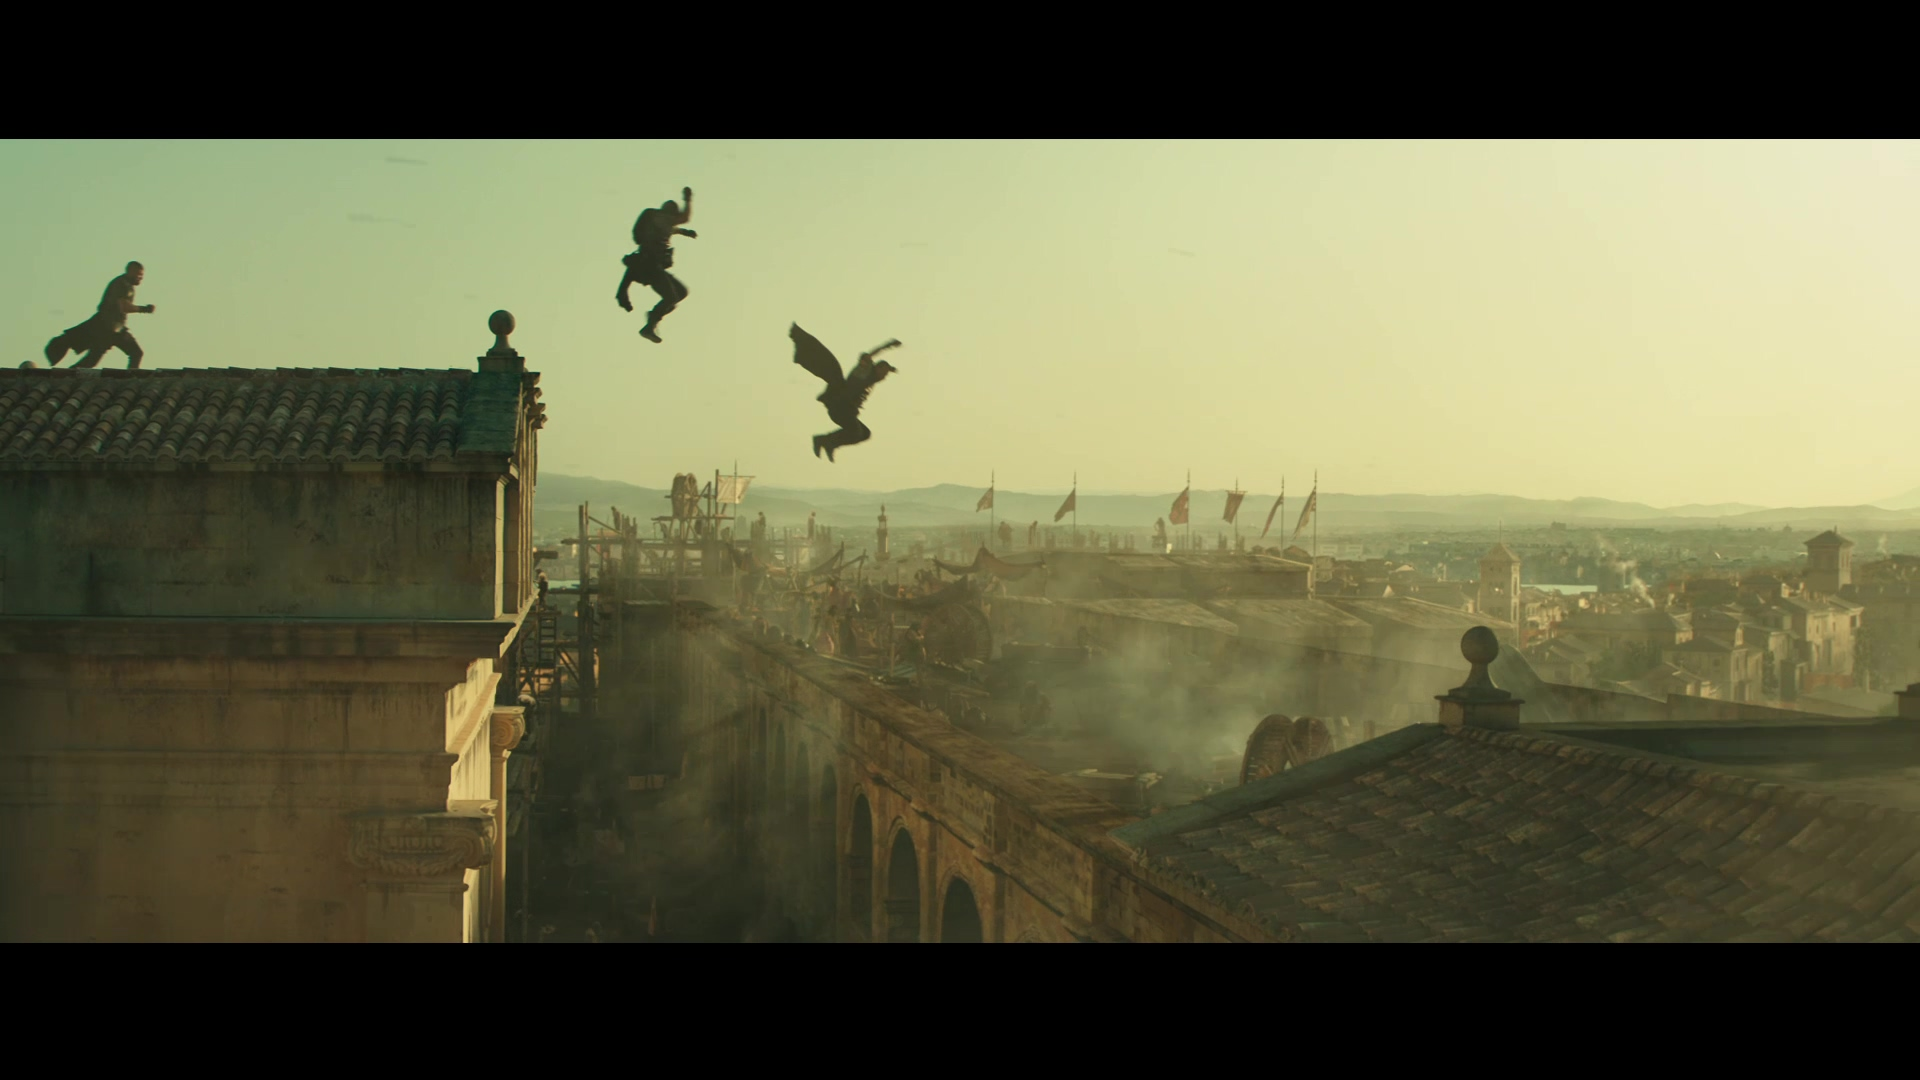 Second Trailer Released for the Assassin's Creed Movie ...